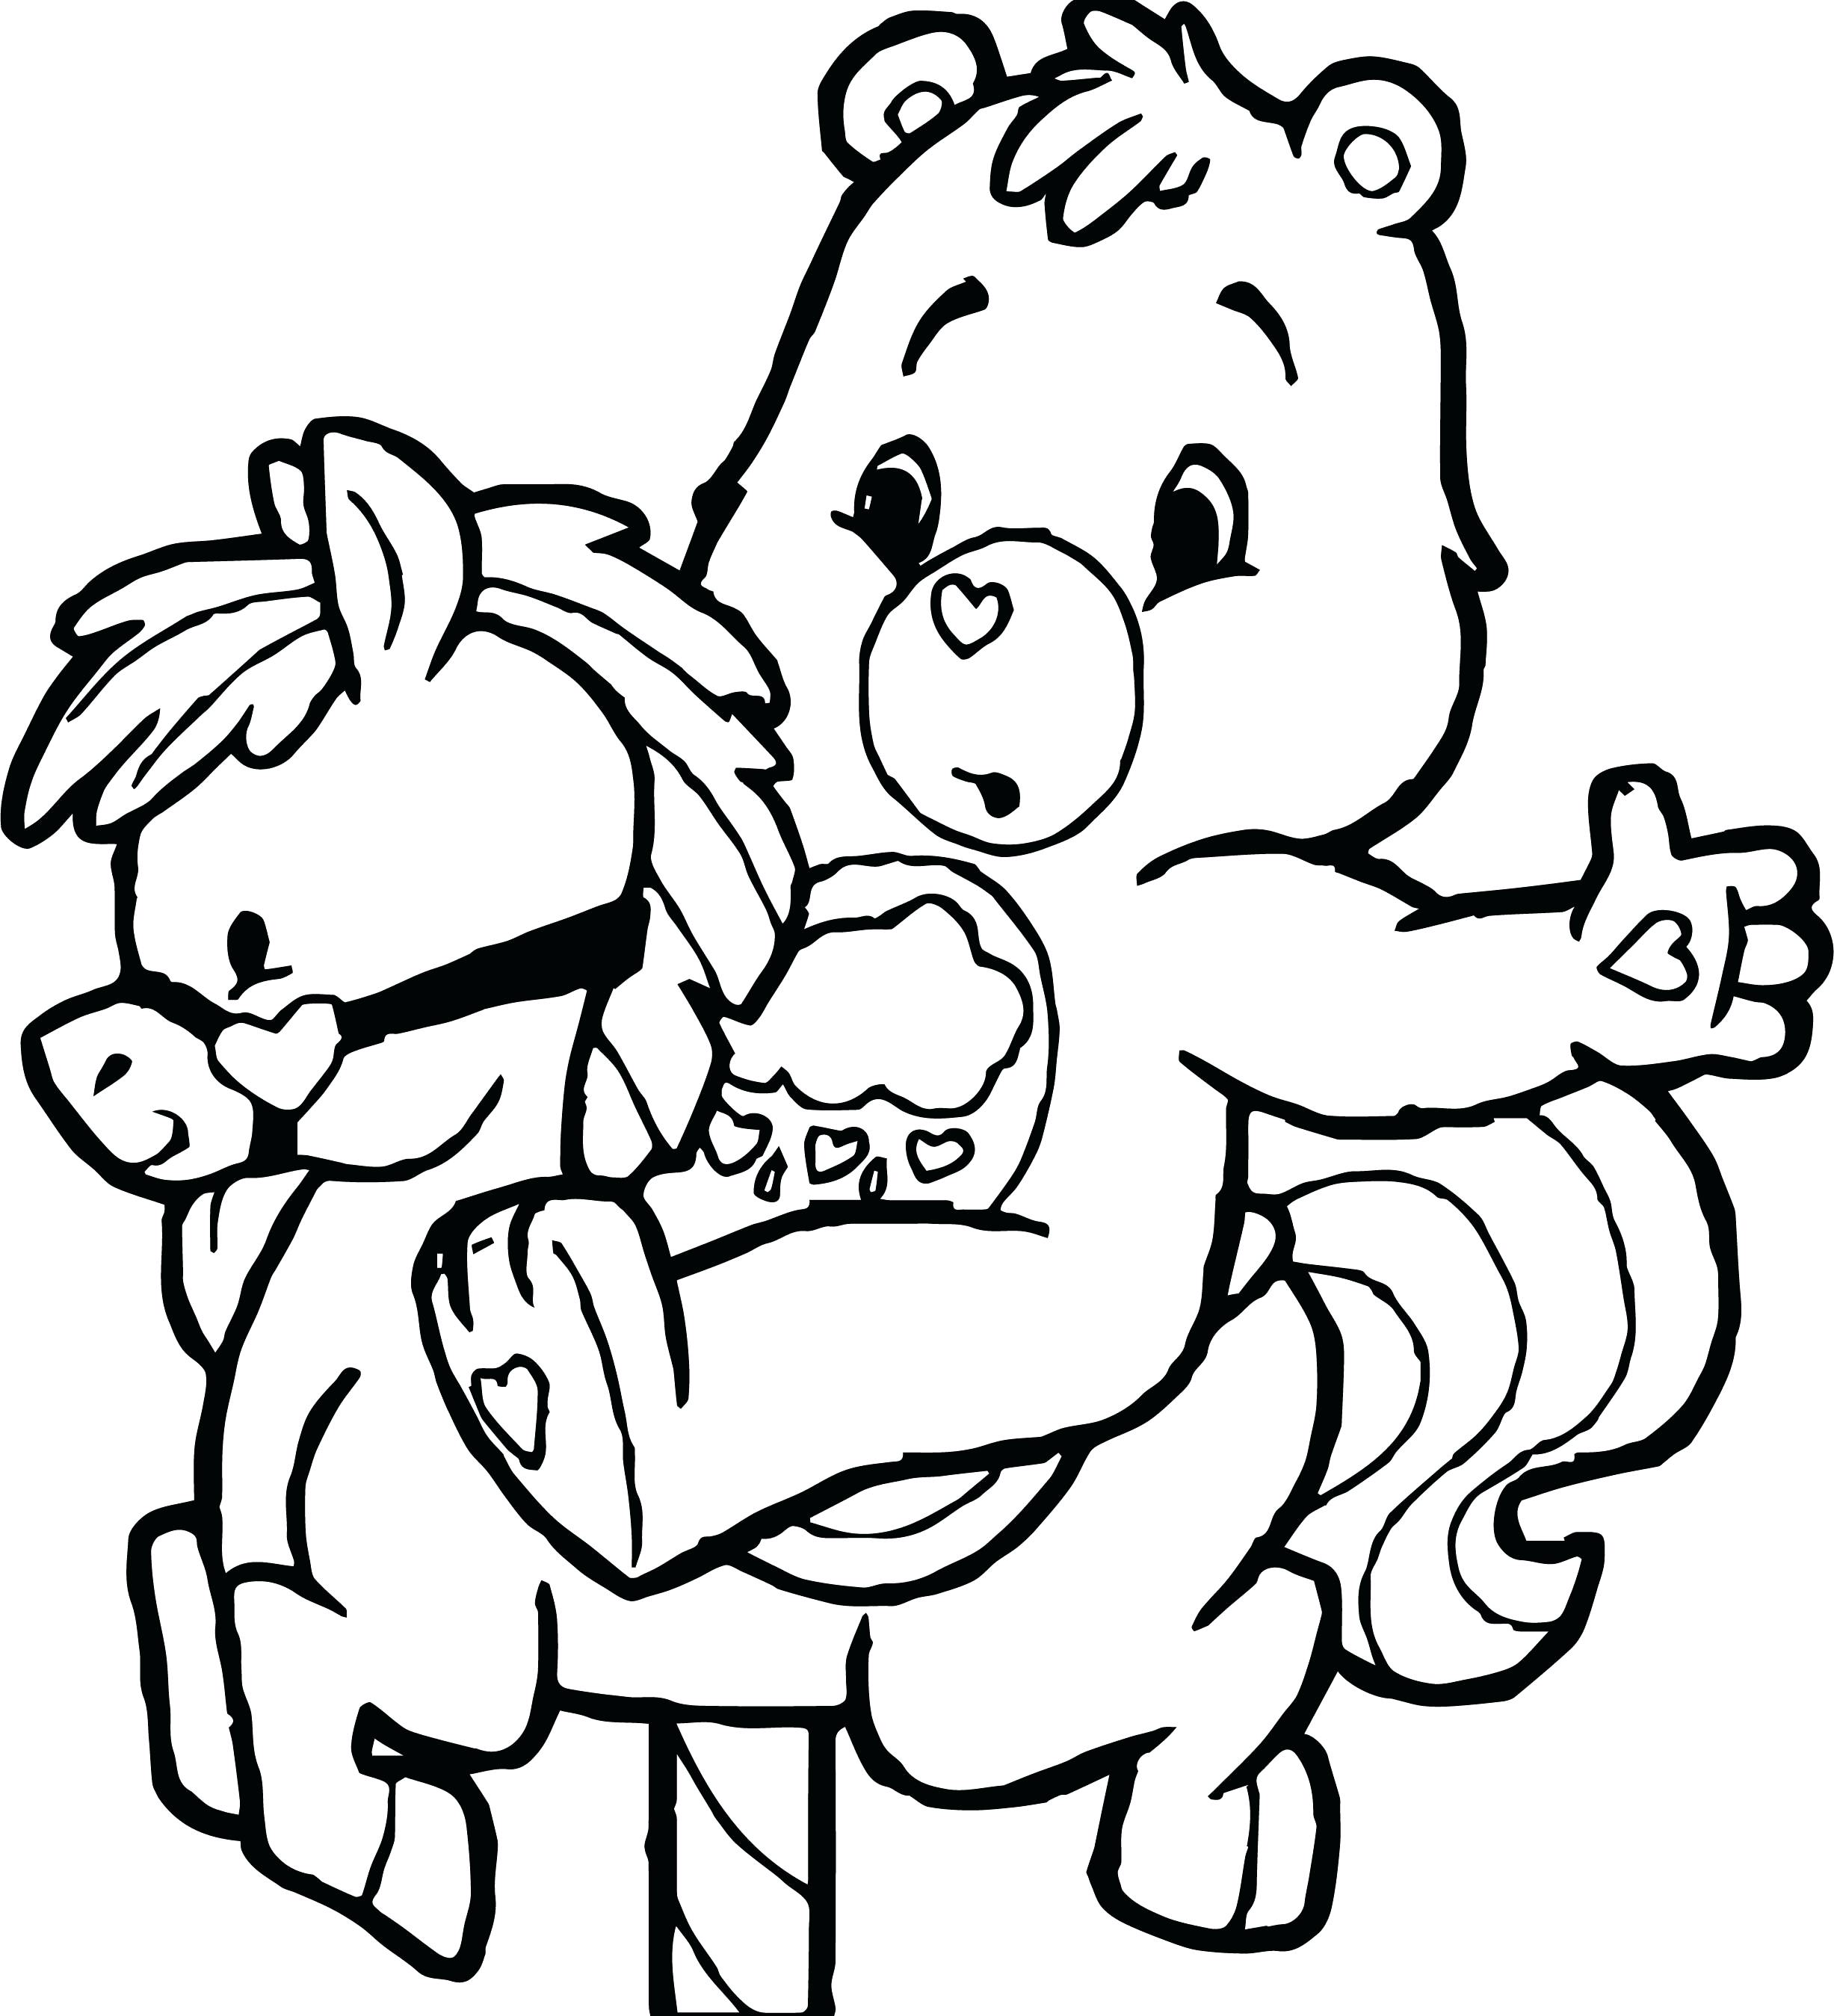 2454x2698 Chicago Bears Coloring Pages